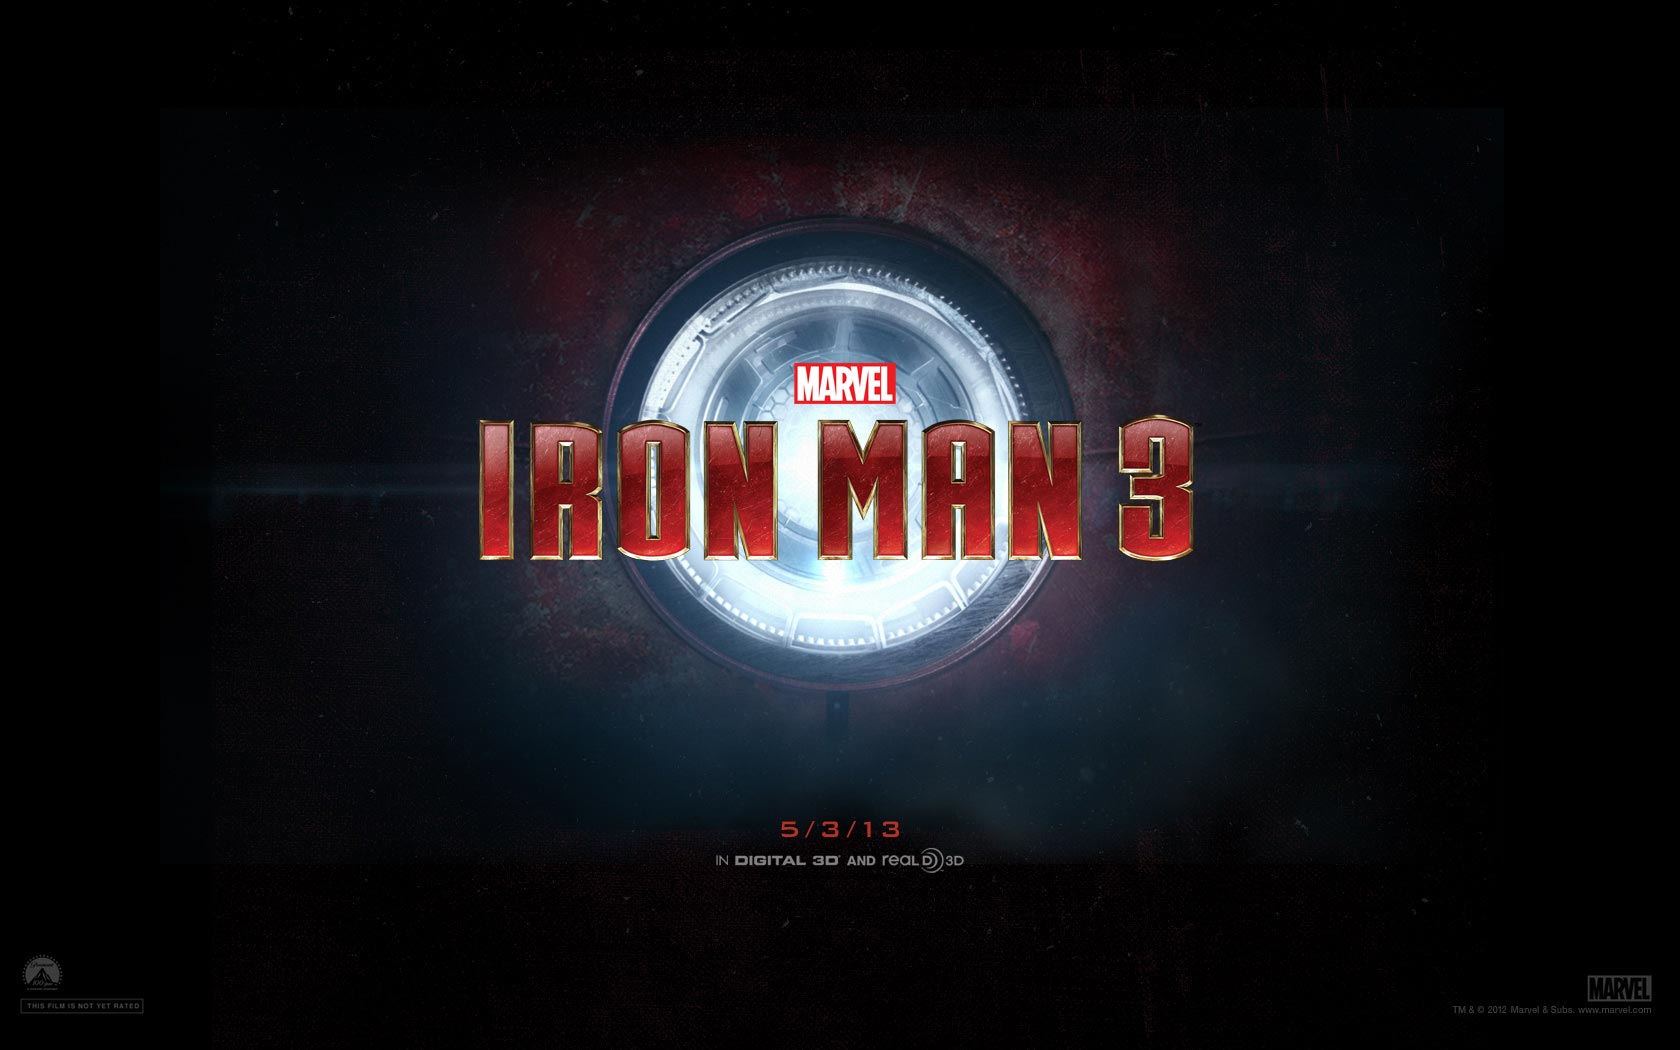 Iron Man 3 In Theaters Friday: Here's What To Expect